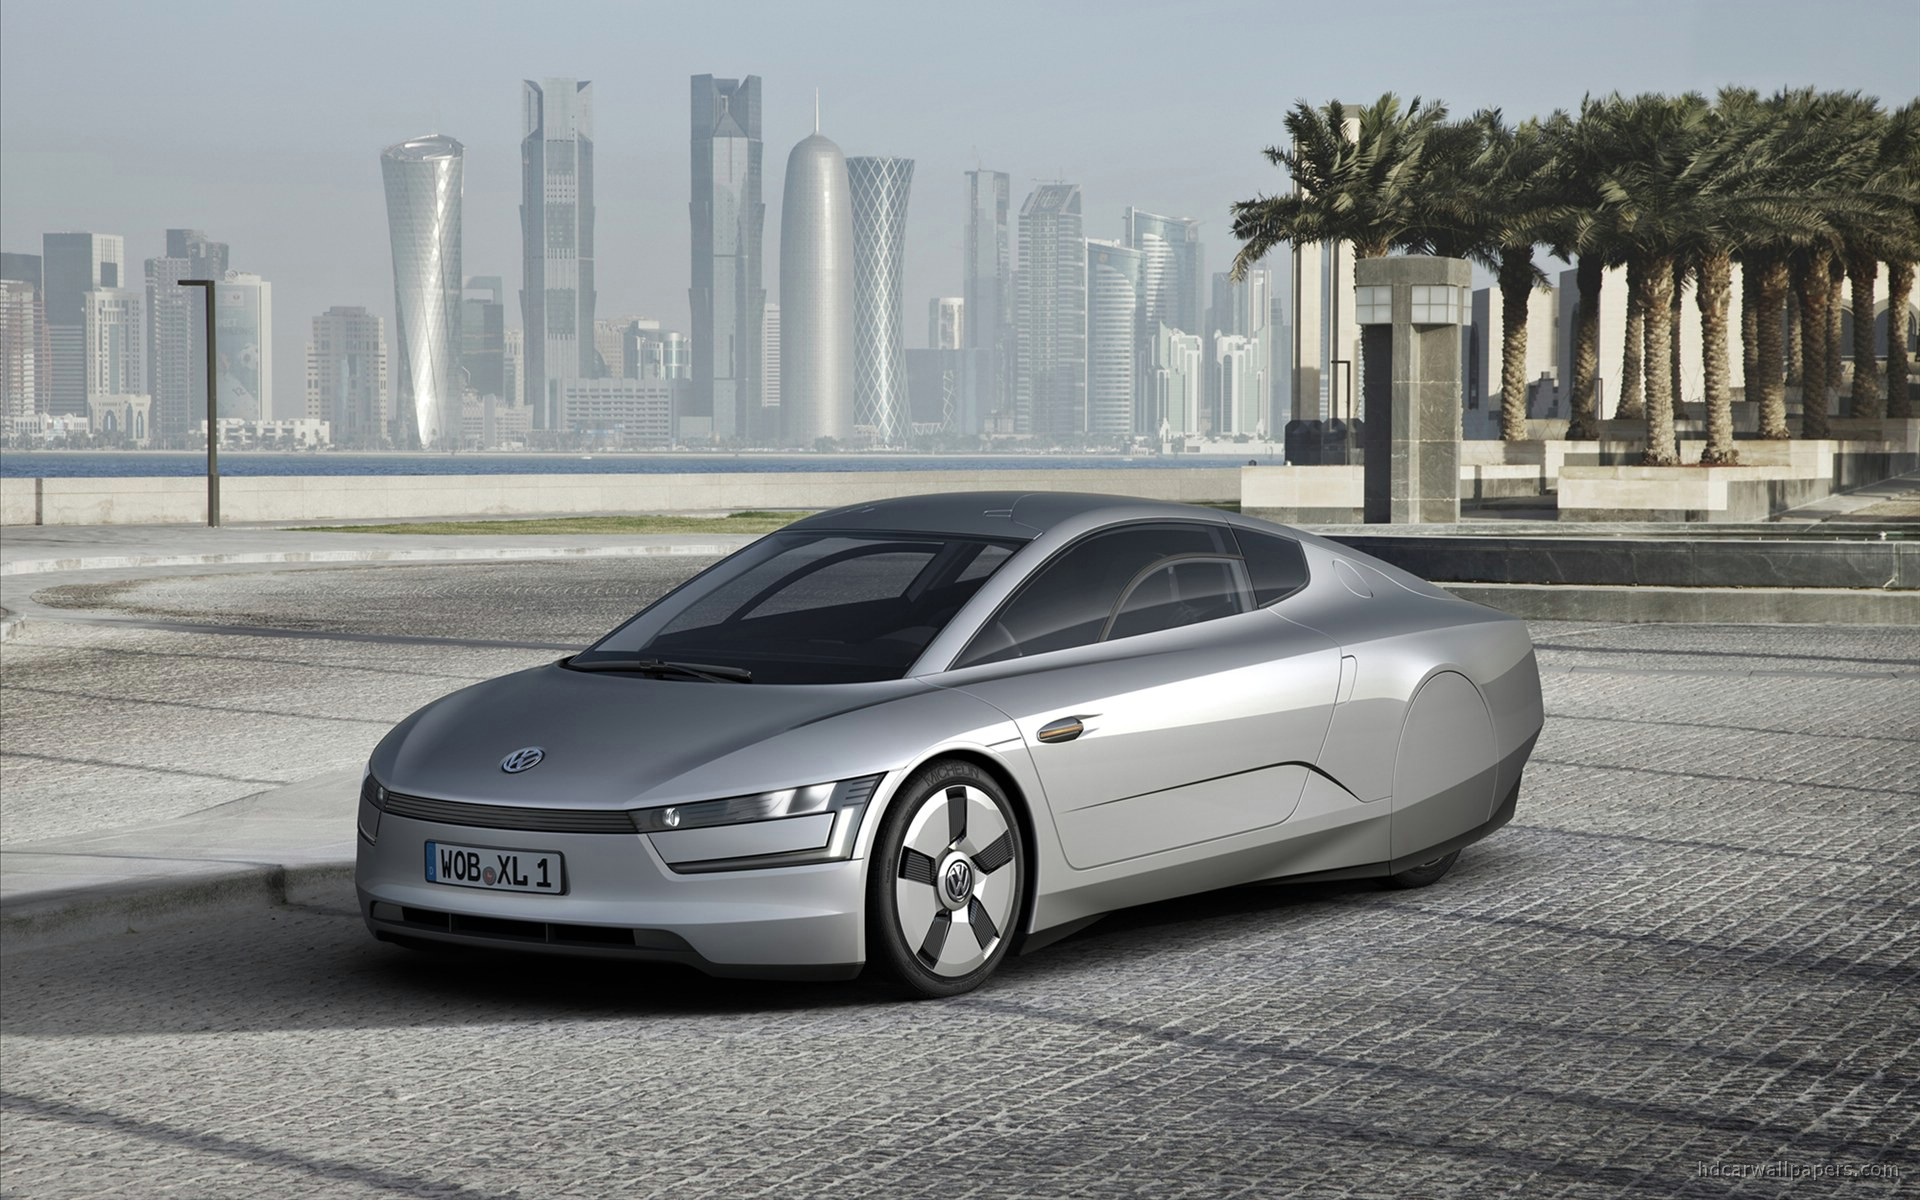 2011 Volkswagen XL1 Concept Wallpaper | HD Car Wallpapers